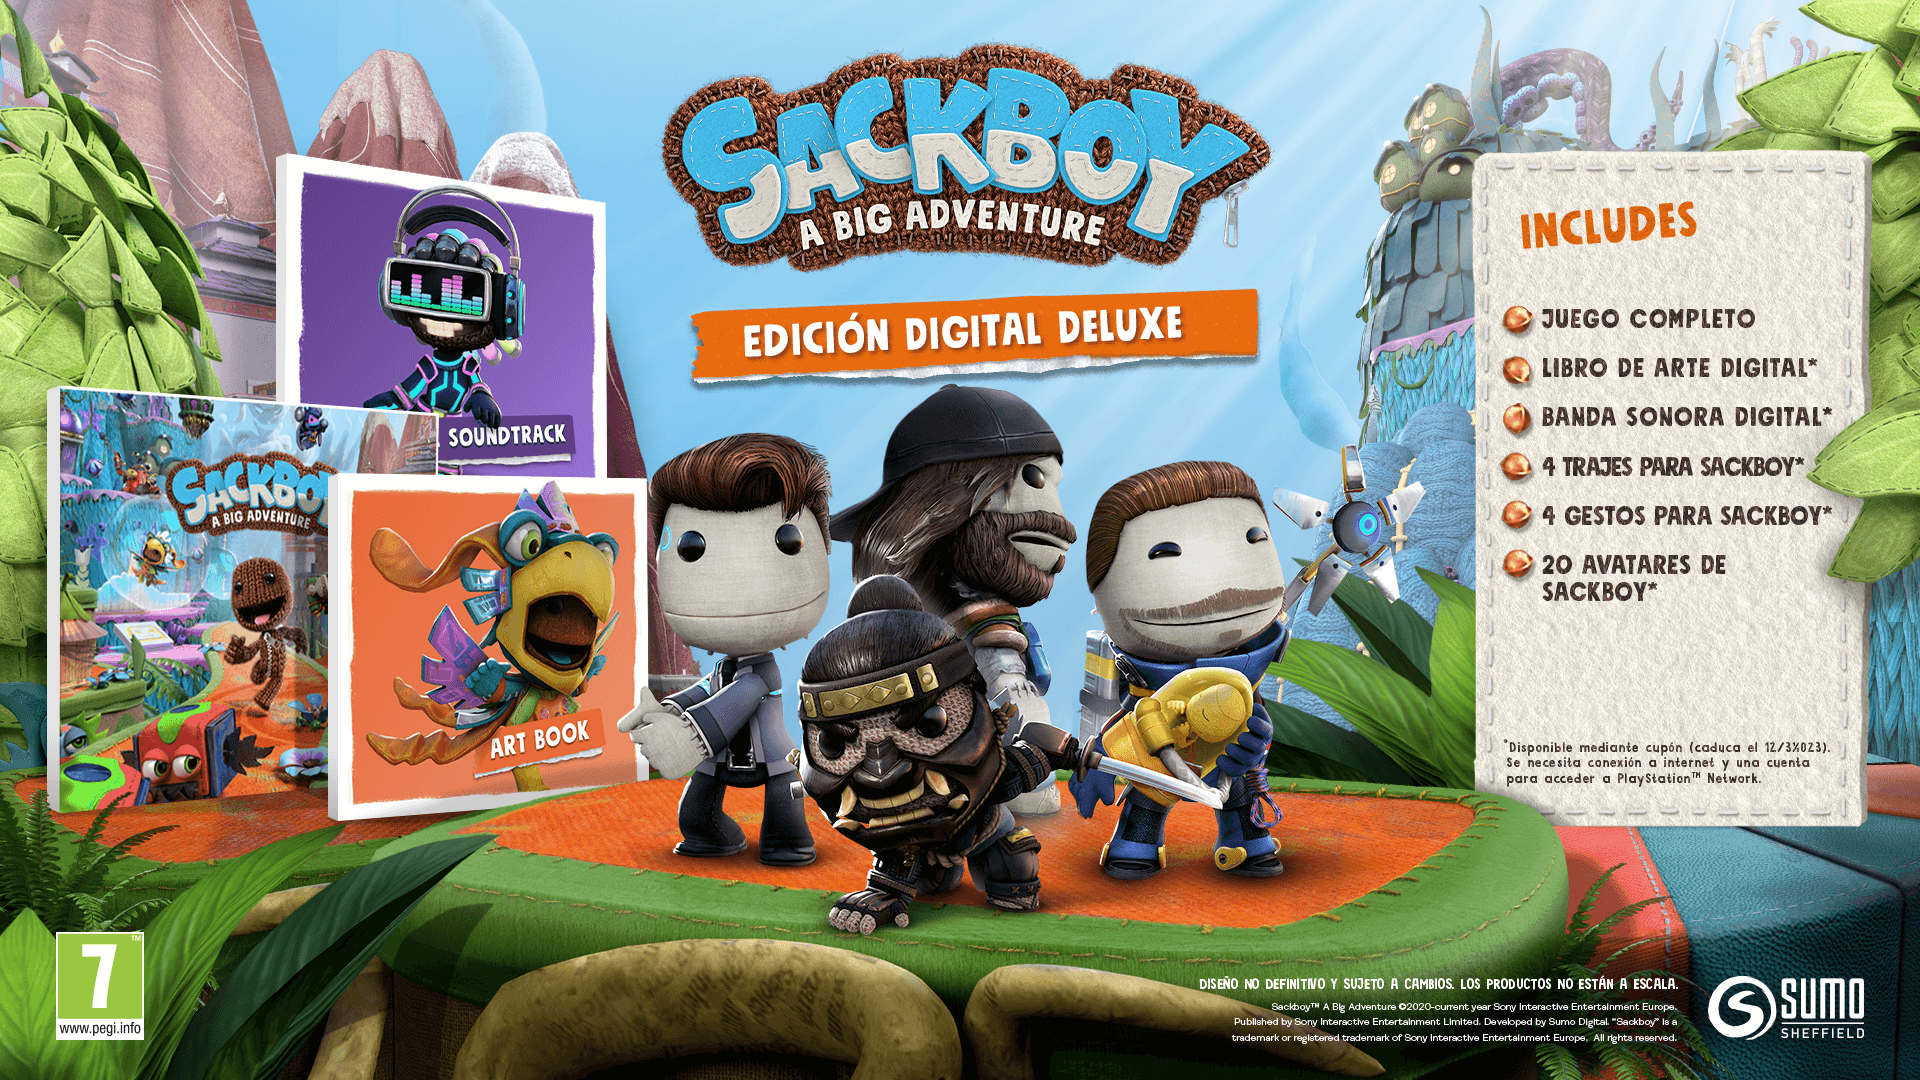 Playstation 5 _SACKBOY_ED_DIG_DELUXE